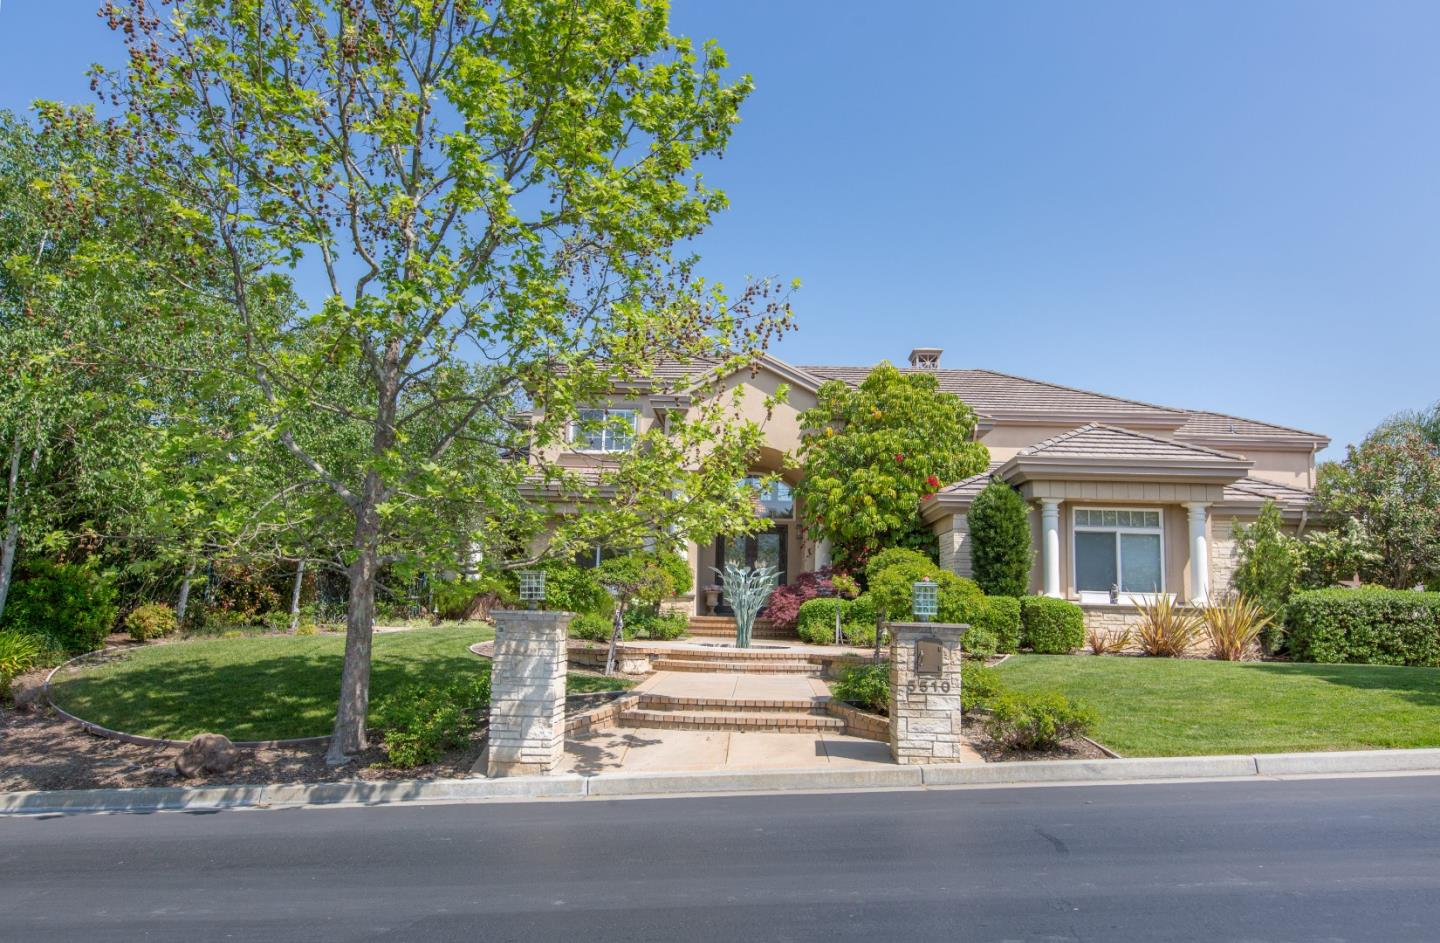 5510 COUNTRY CLUB PKWY, SAN JOSE, CA 95138